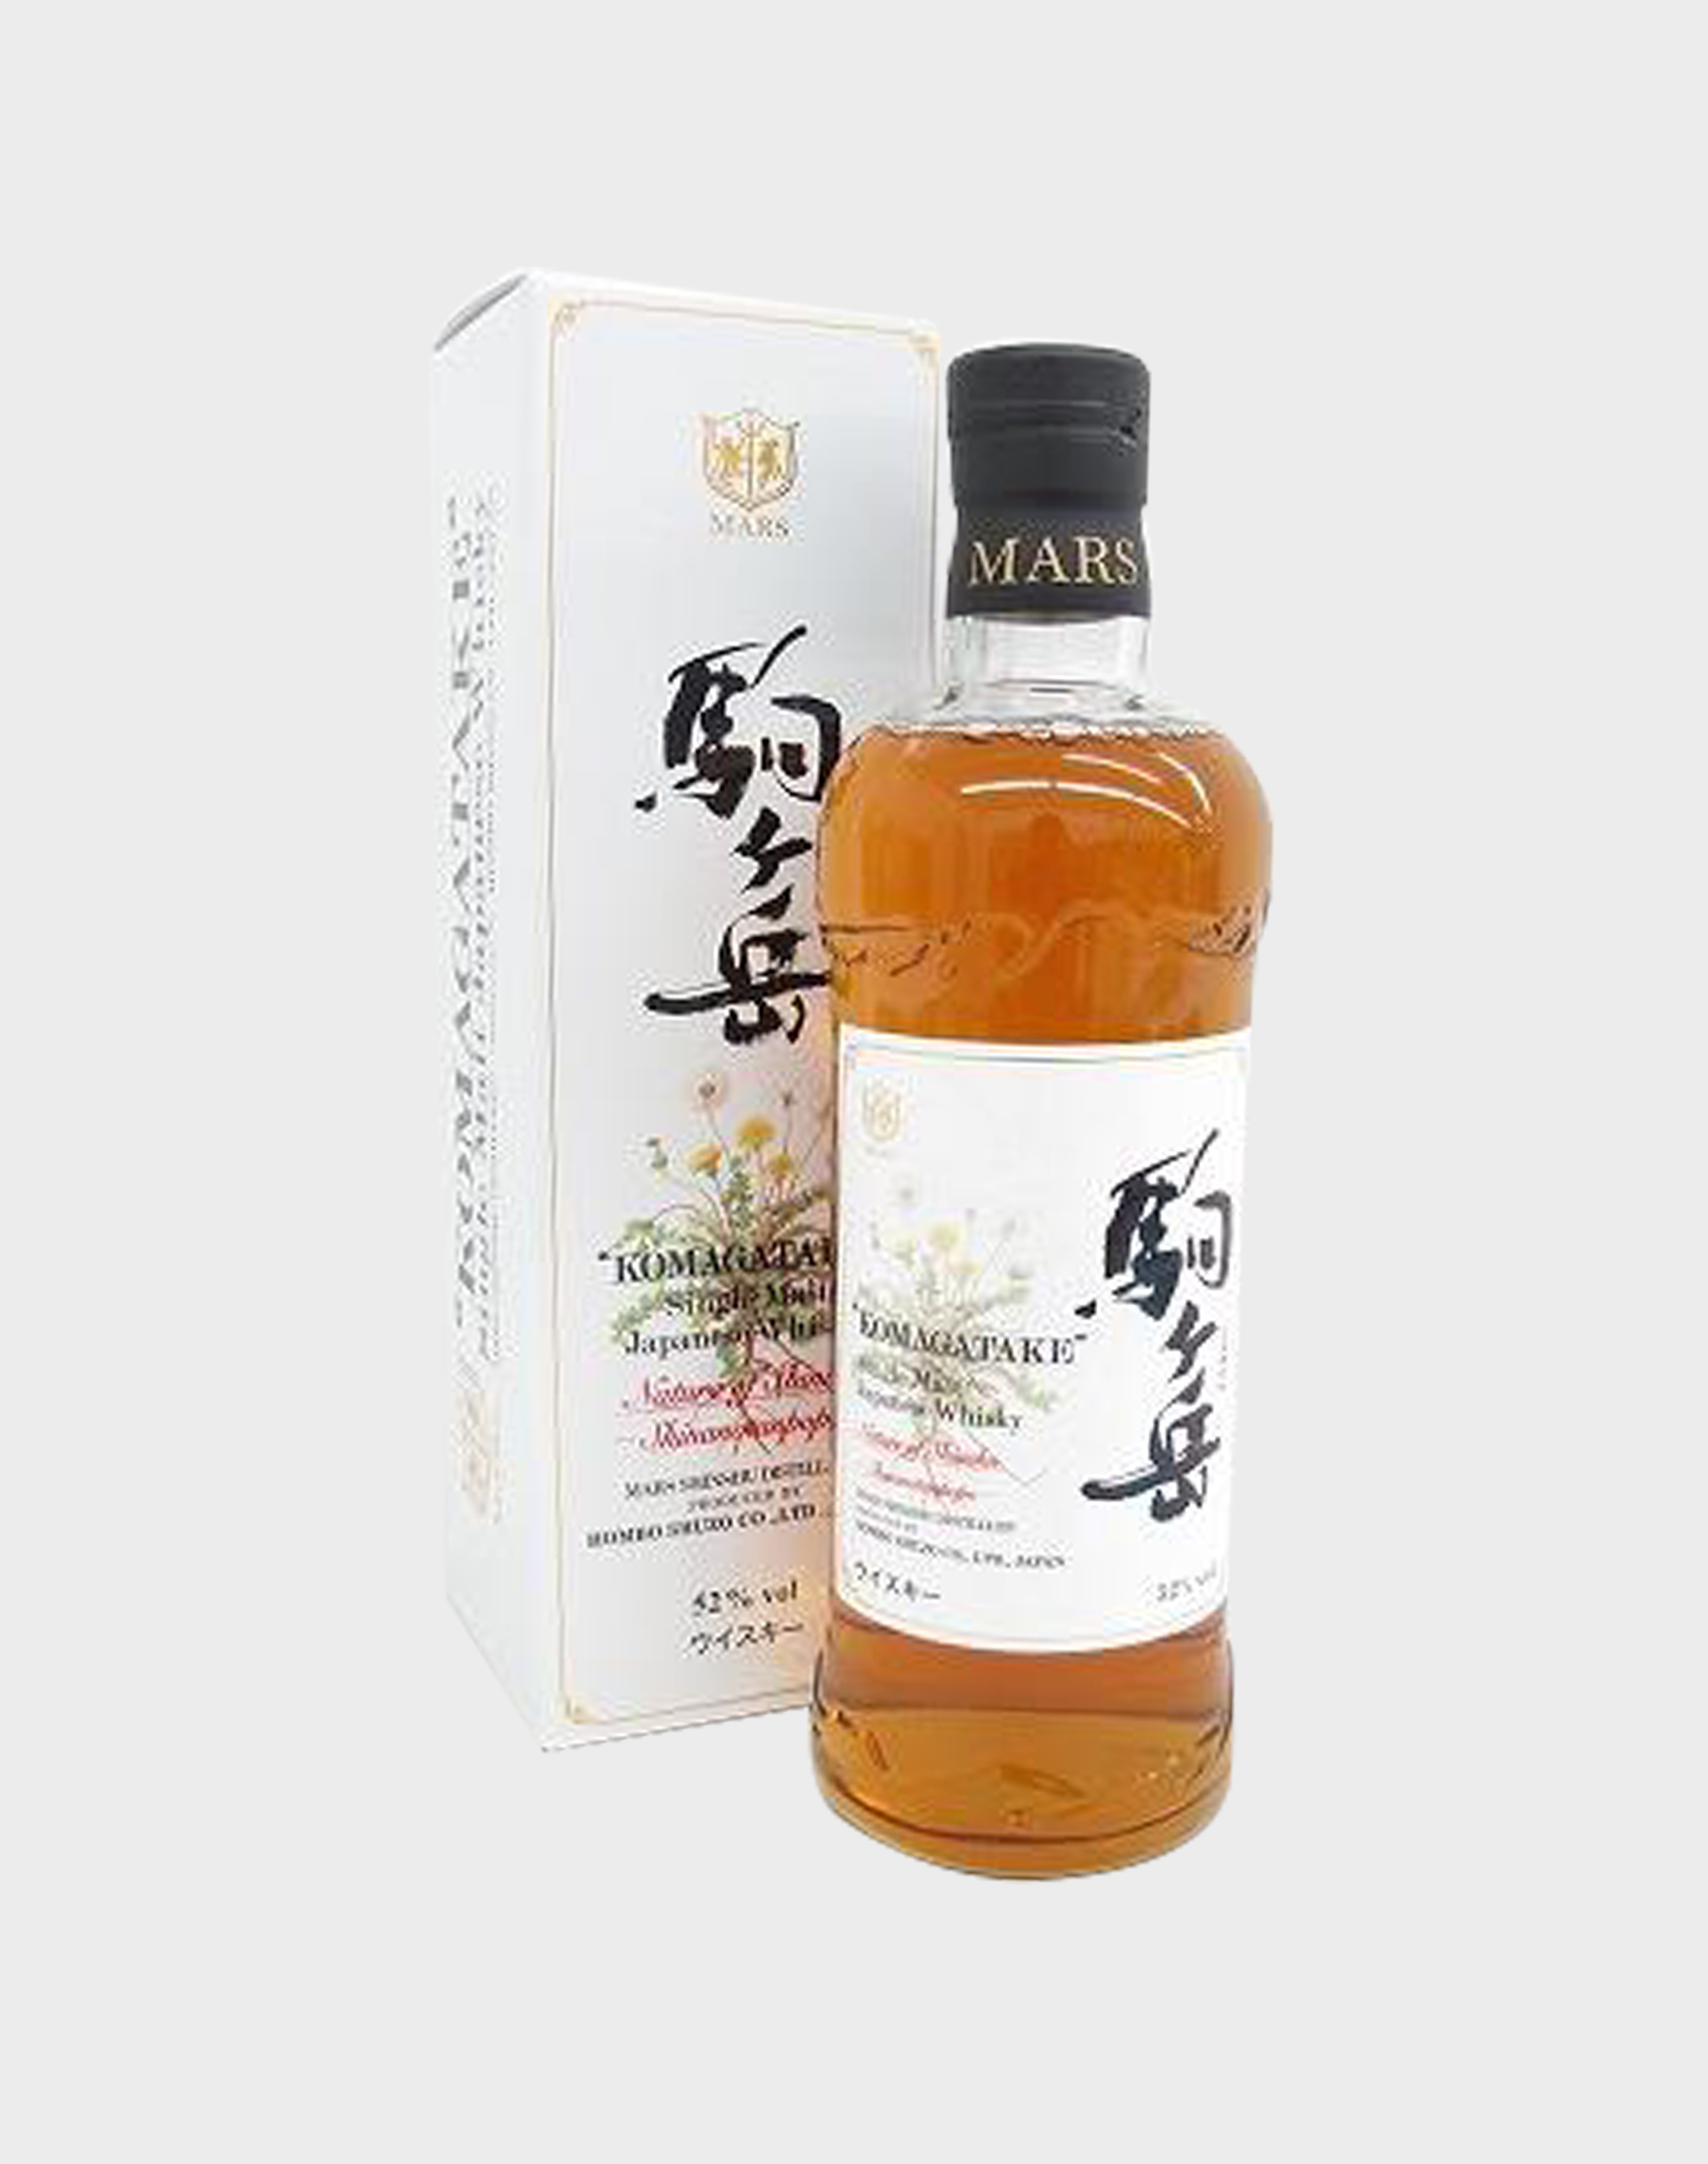 Mars Komagatake Nature of Shinshu 2017 Limited Edition